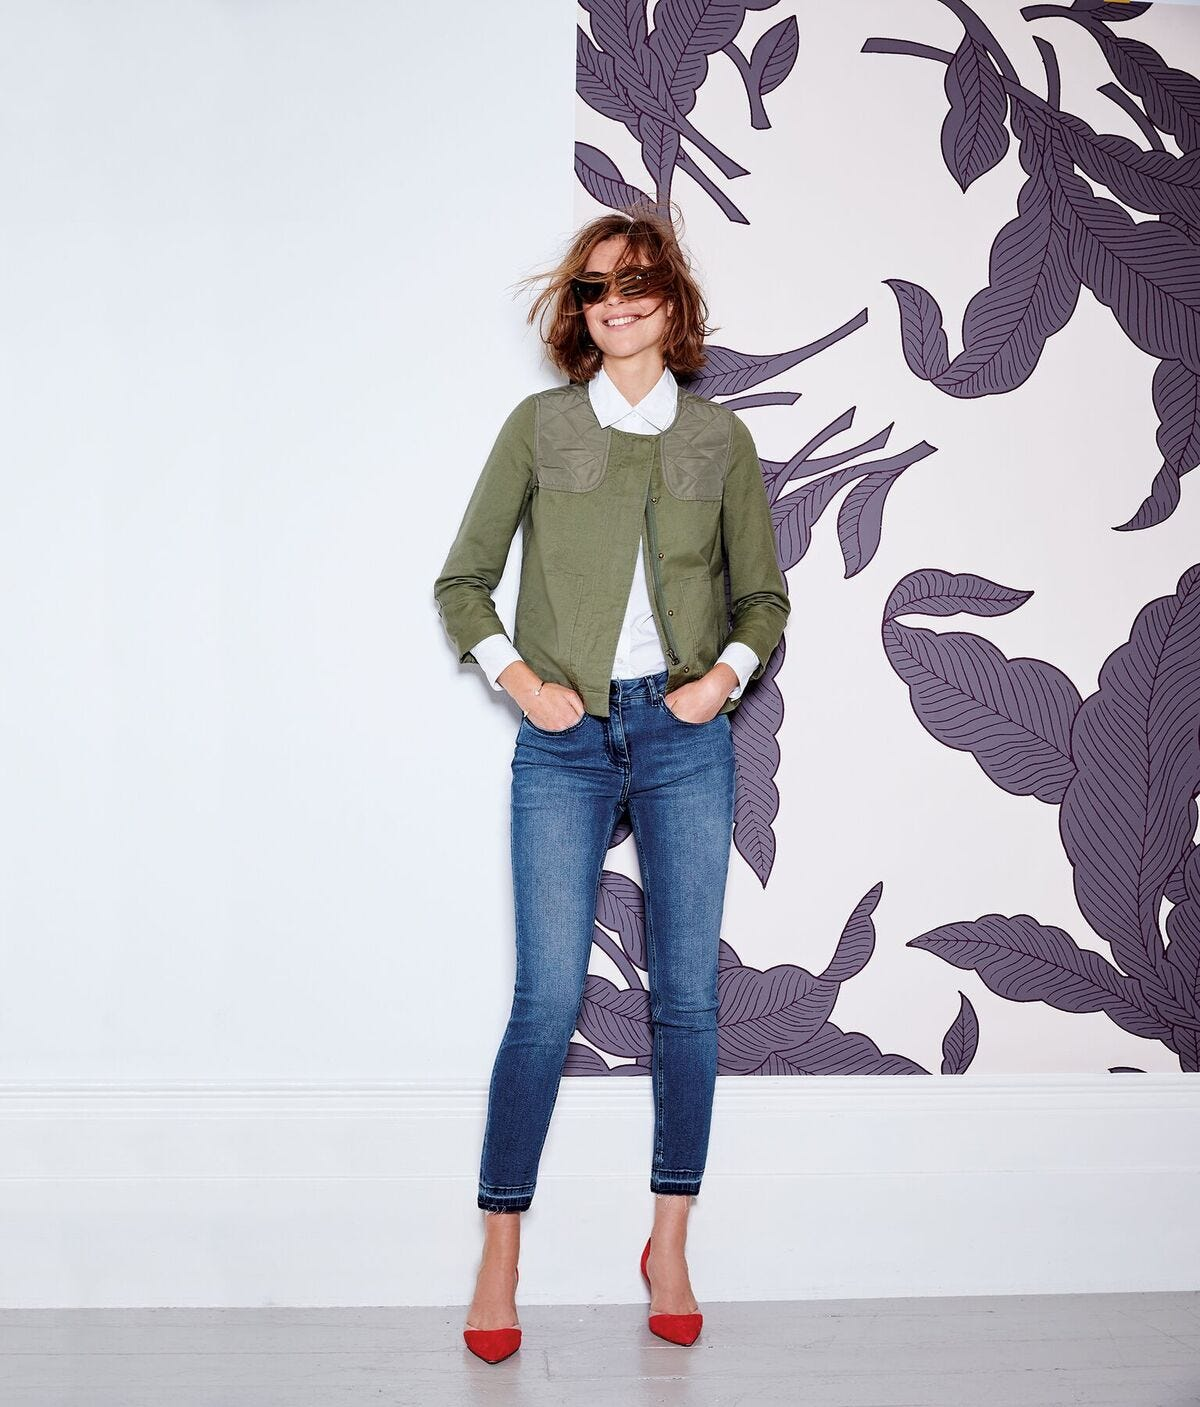 7b534ccba51 Boden Lookbook Spring 2016 - Military Trend